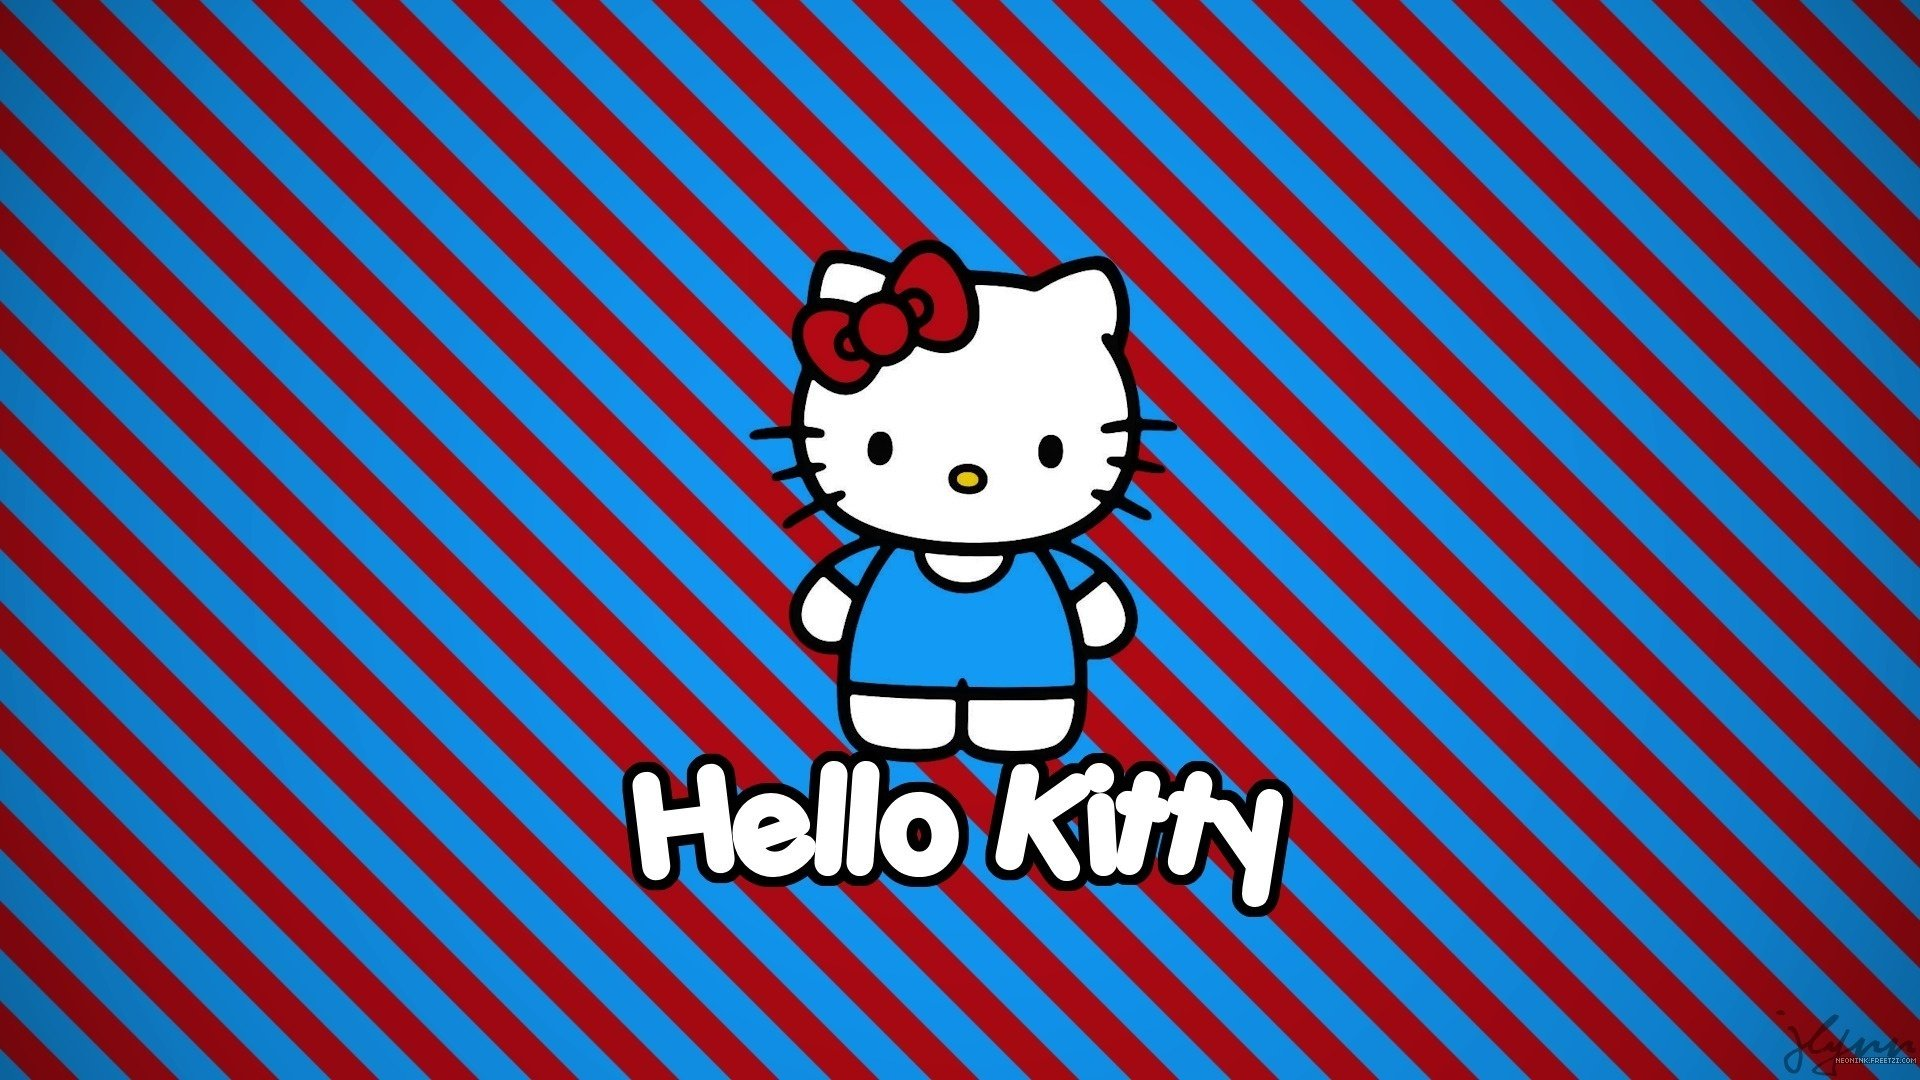 Download 1080p Hello Kitty PC wallpaper ID:93349 for free